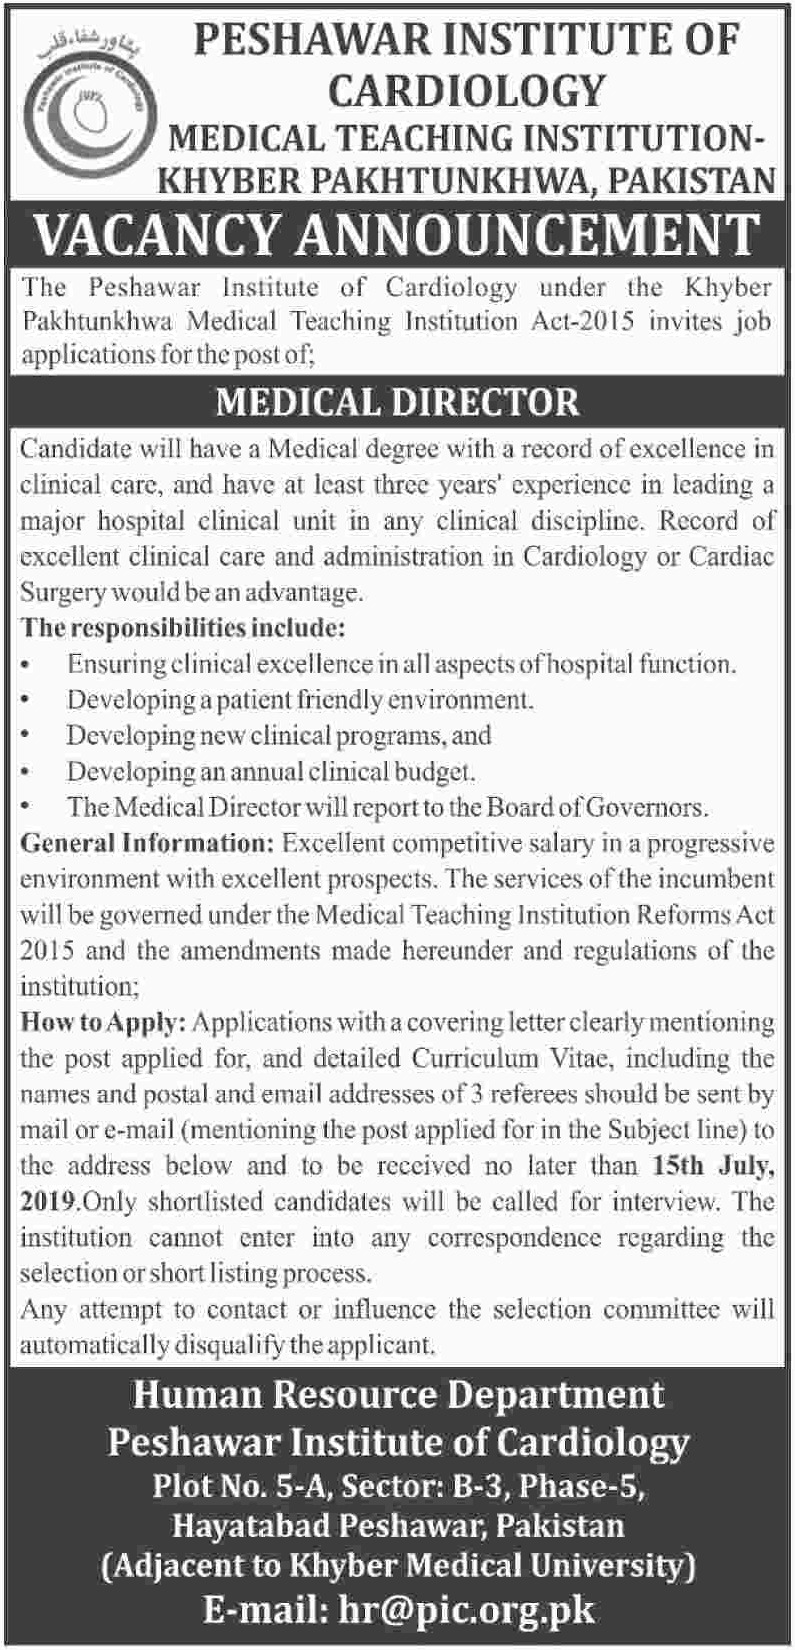 Peshawar Institute of Cardiology Jobs 2019 Khyber Pakhtunkhwa